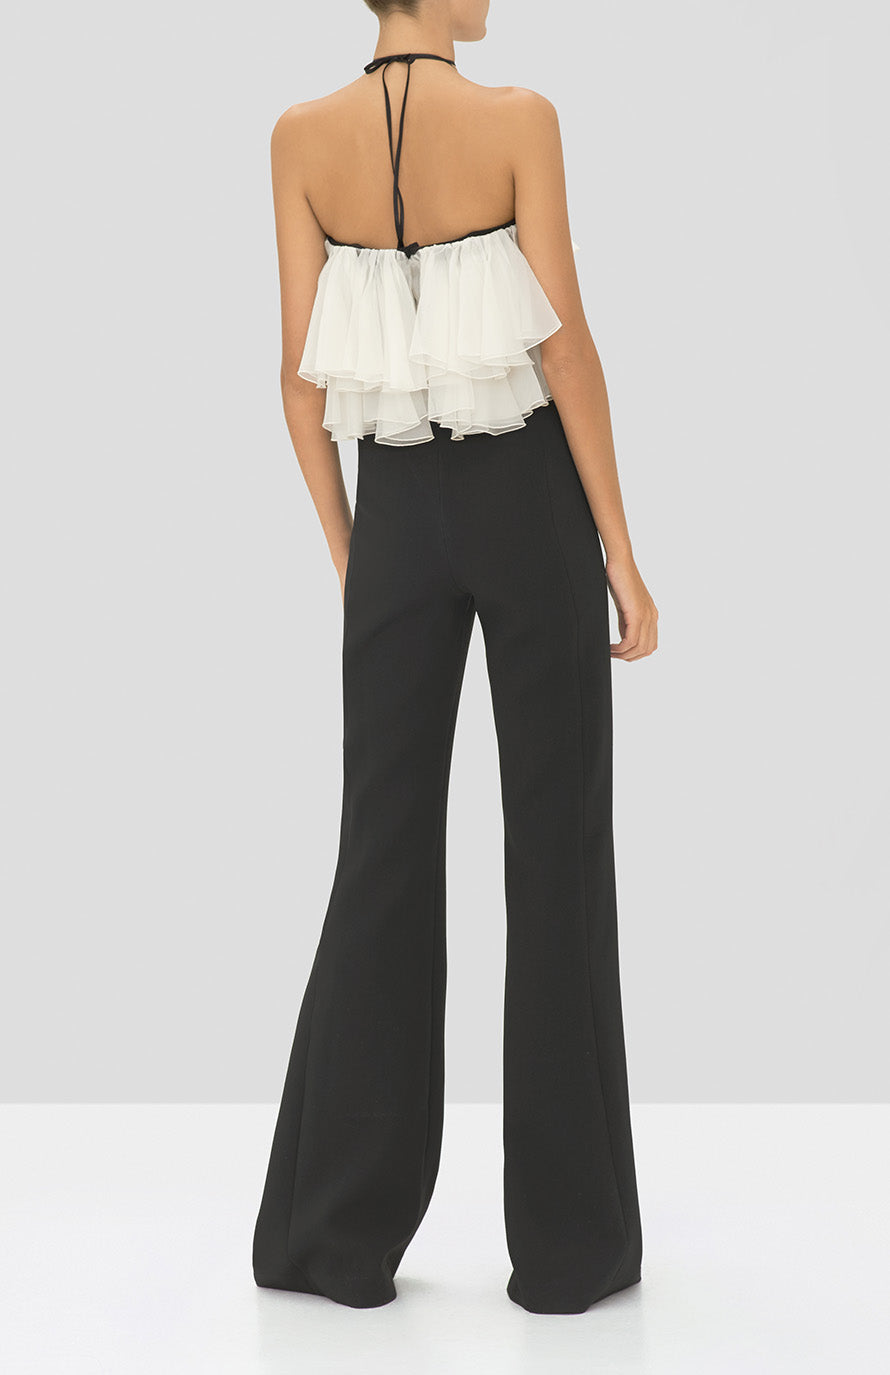 Alexis Kaiya Jumpsuit in Black from the Holiday 2019 Ready To Wear Collection - Rear View